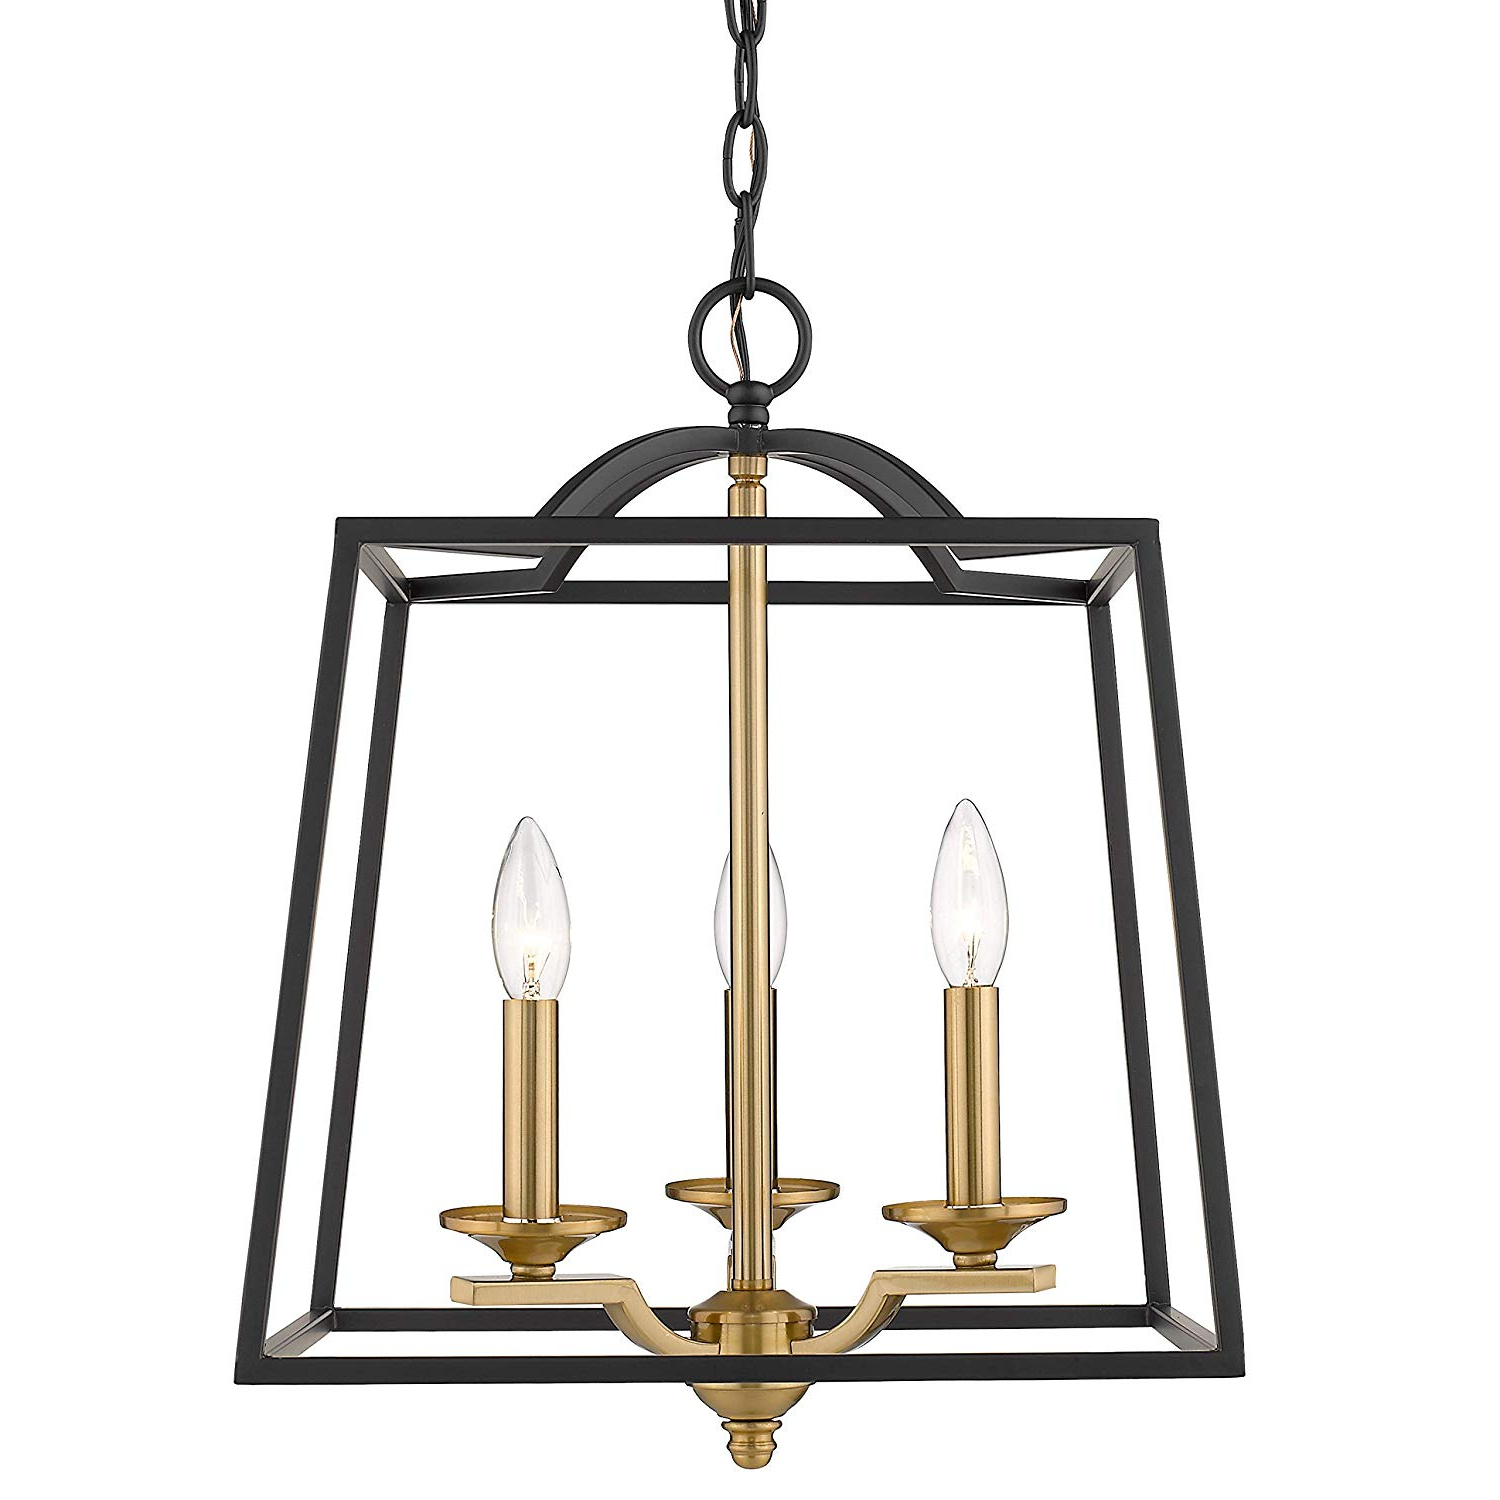 Emliviar 3 Light Foyer Chandelier, Pendant Light With Lantern Style Cage  Hanging Light Fixture For Hall Kitchen Island, Black And Gold Finish,  2086P 3 Within Popular Kenedy 9 Light Candle Style Chandeliers (View 8 of 25)